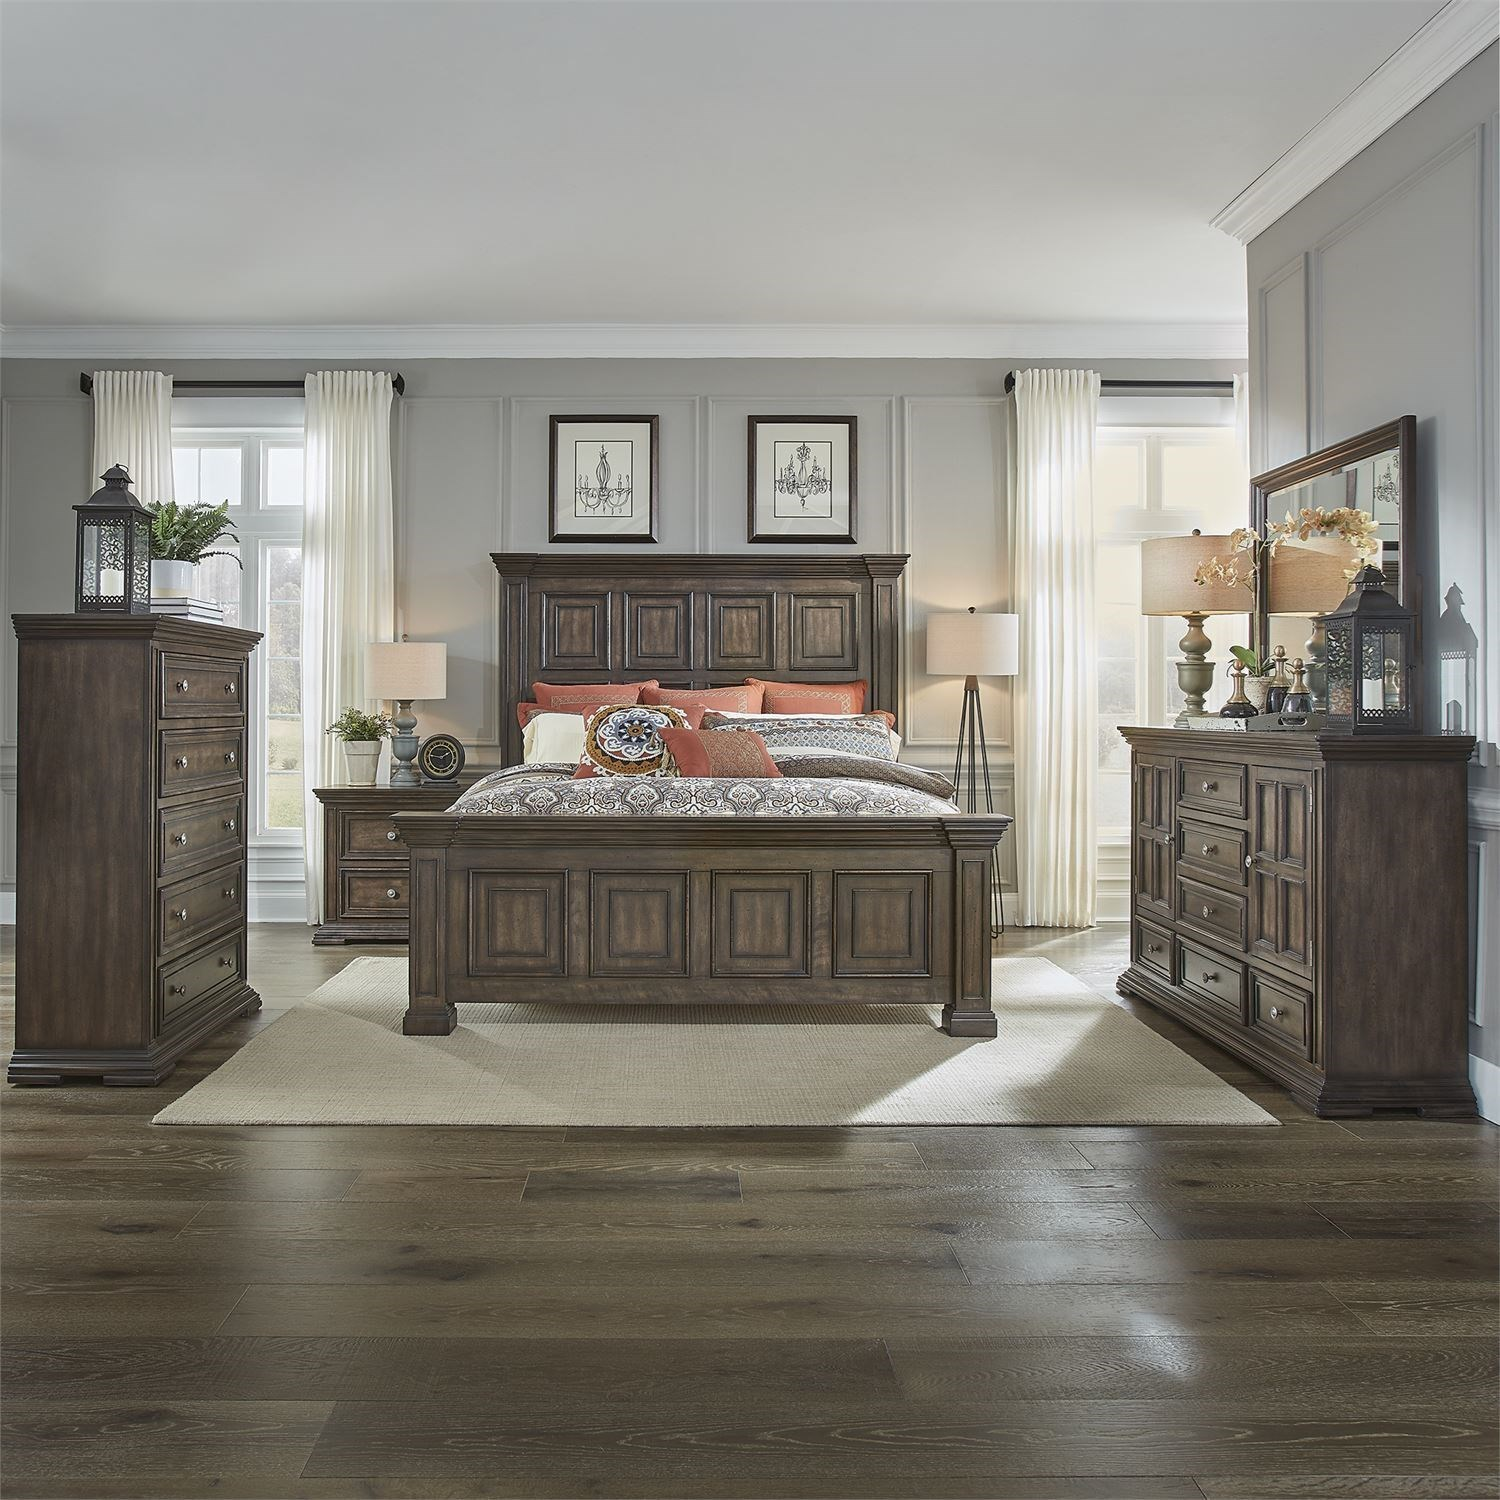 Big Valley King Bedroom Group by Libby at Walker's Furniture